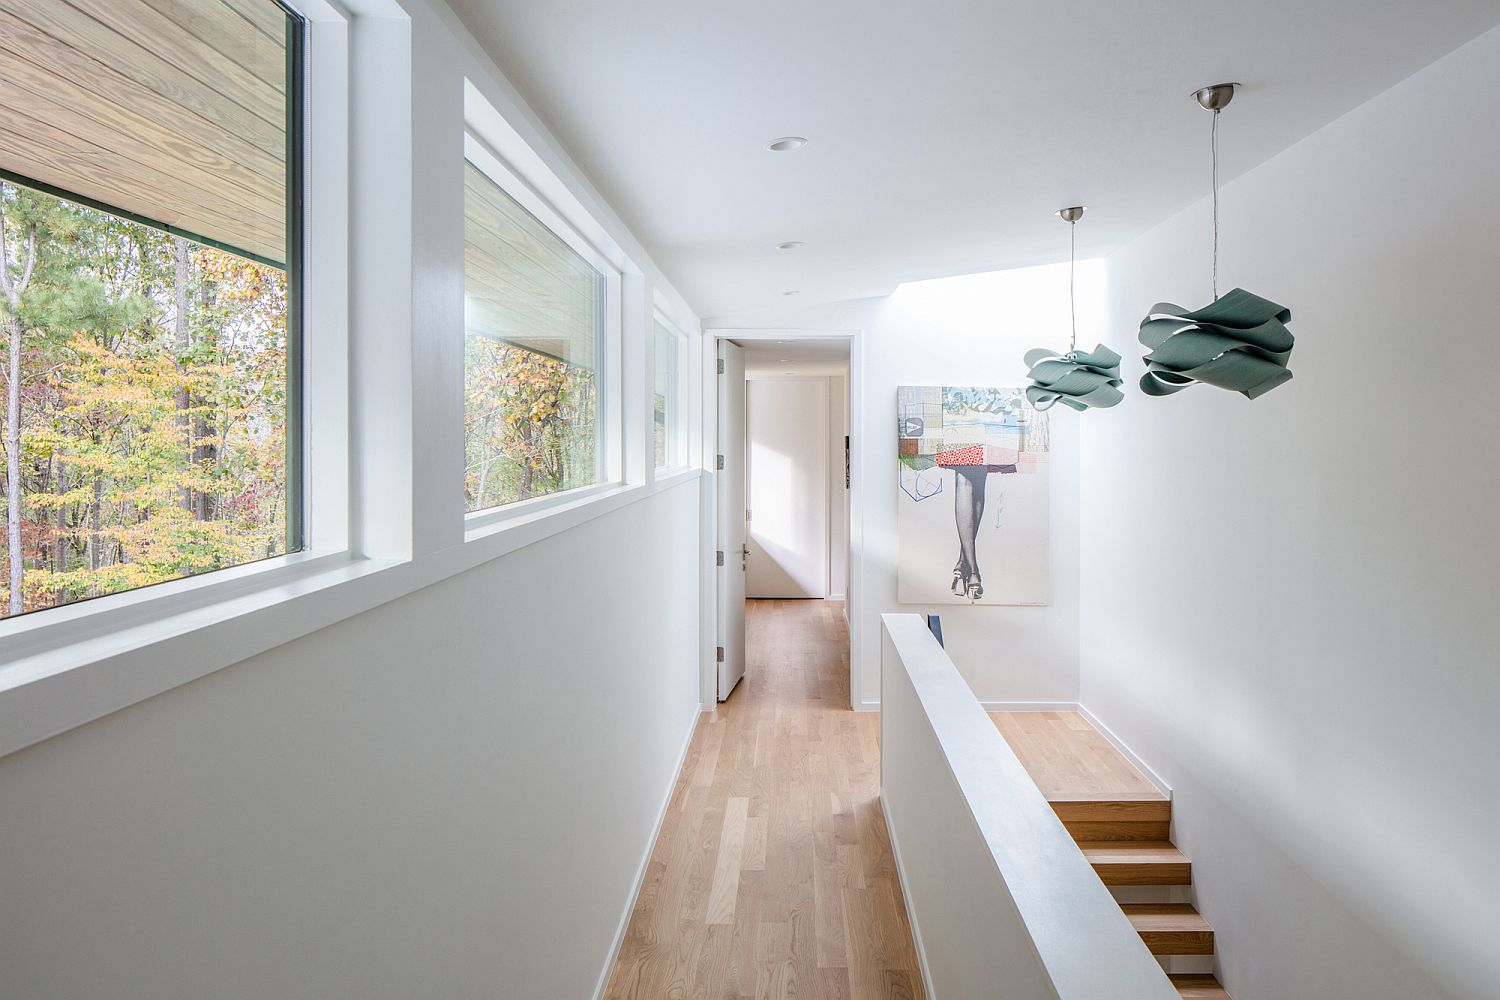 White backdrop and wooden floors give the interior a spacious, light-filled look